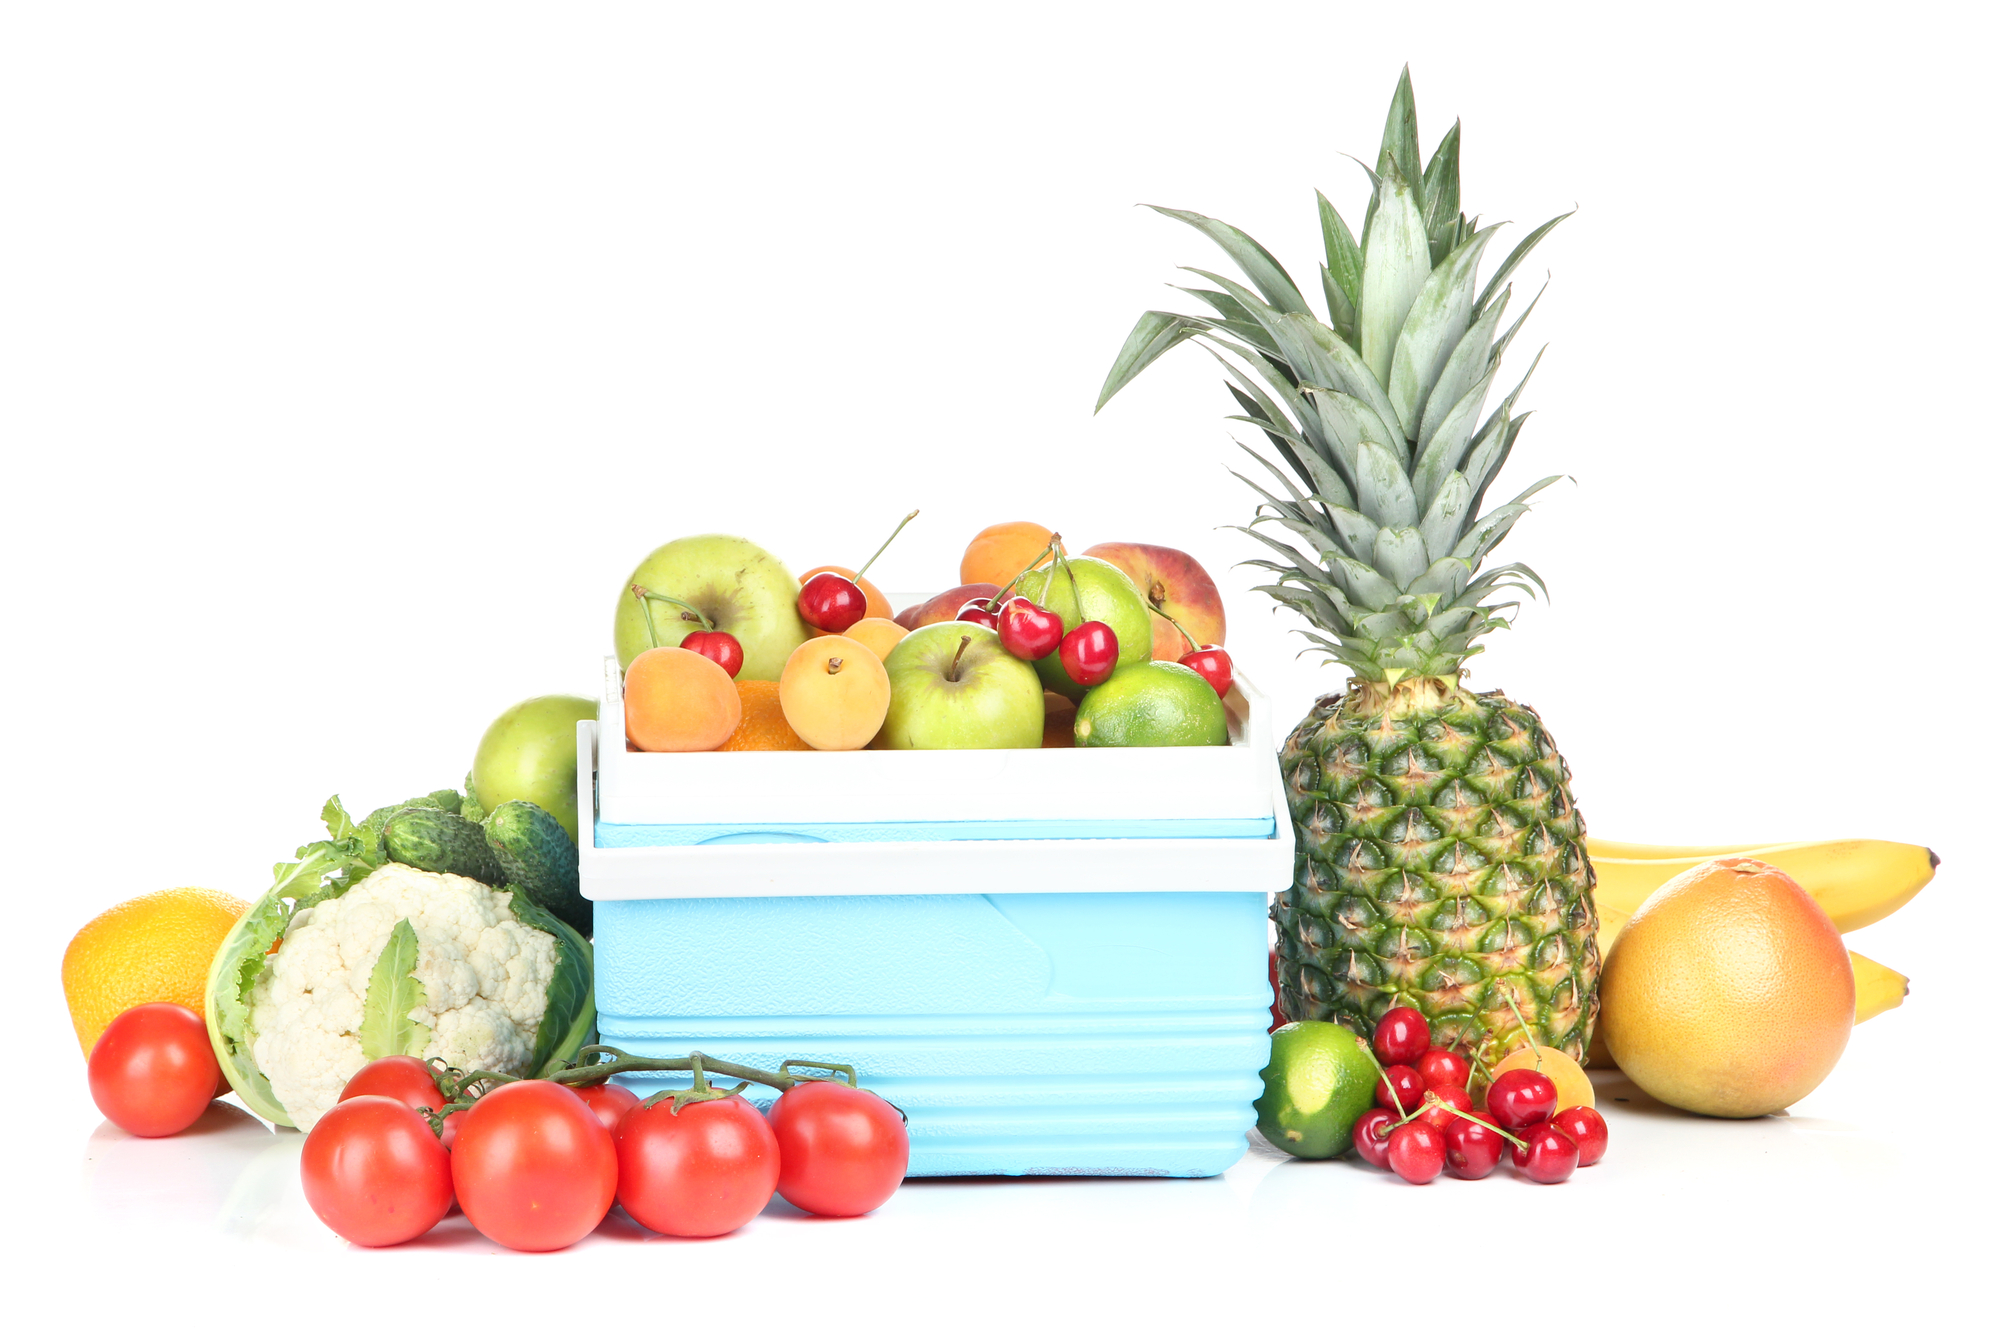 Fruits and vegetables with a cooler